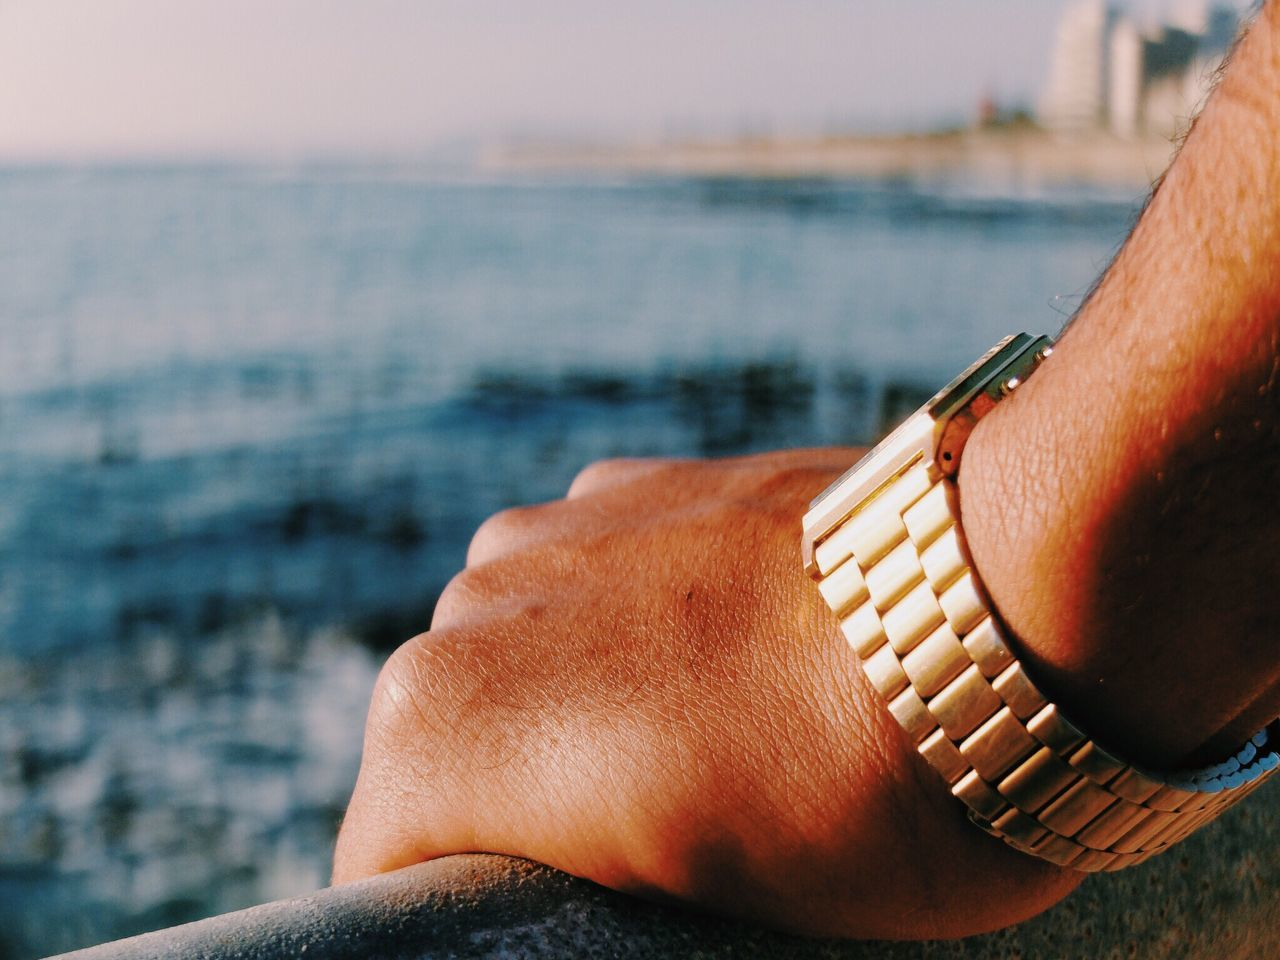 Cropped hand wearing wristwatch by river on sunny day